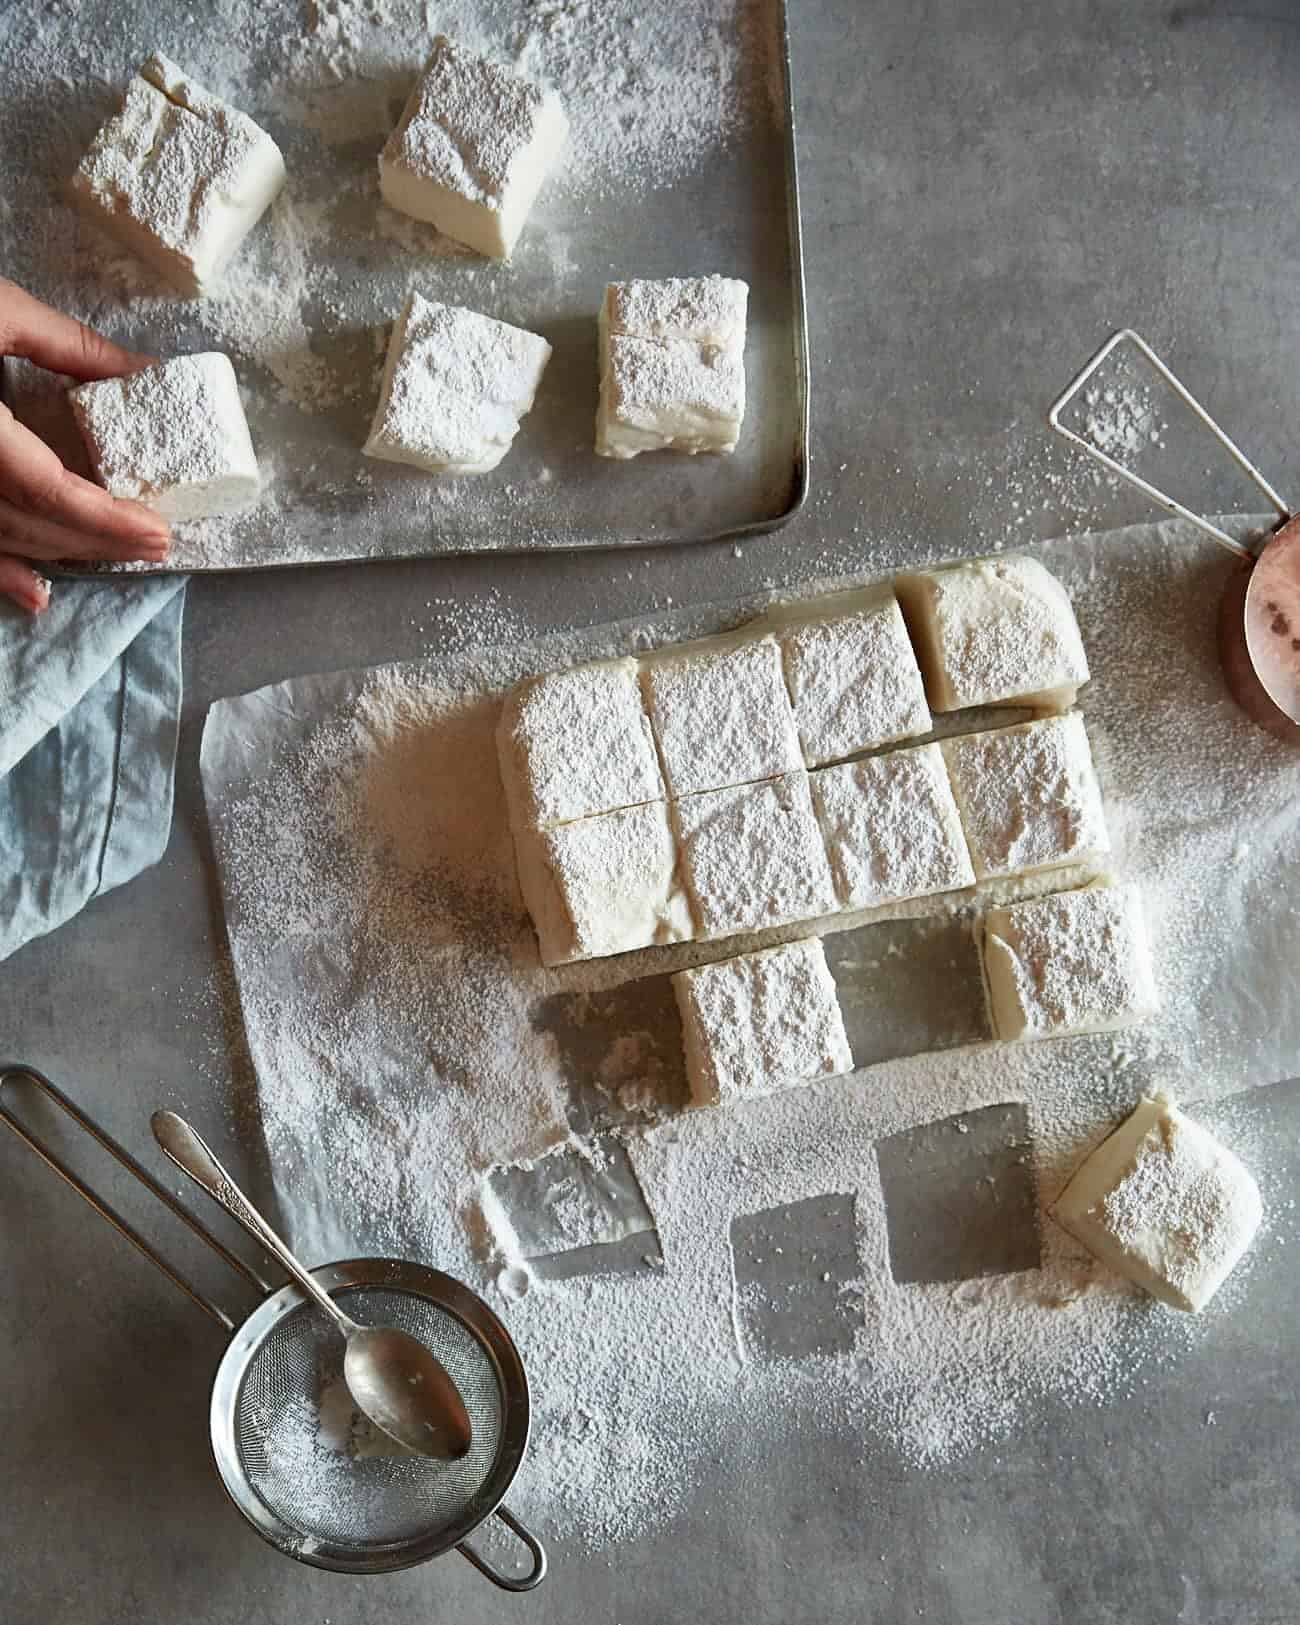 some cut vegan marshmallows on a worktop and on a baking sheet